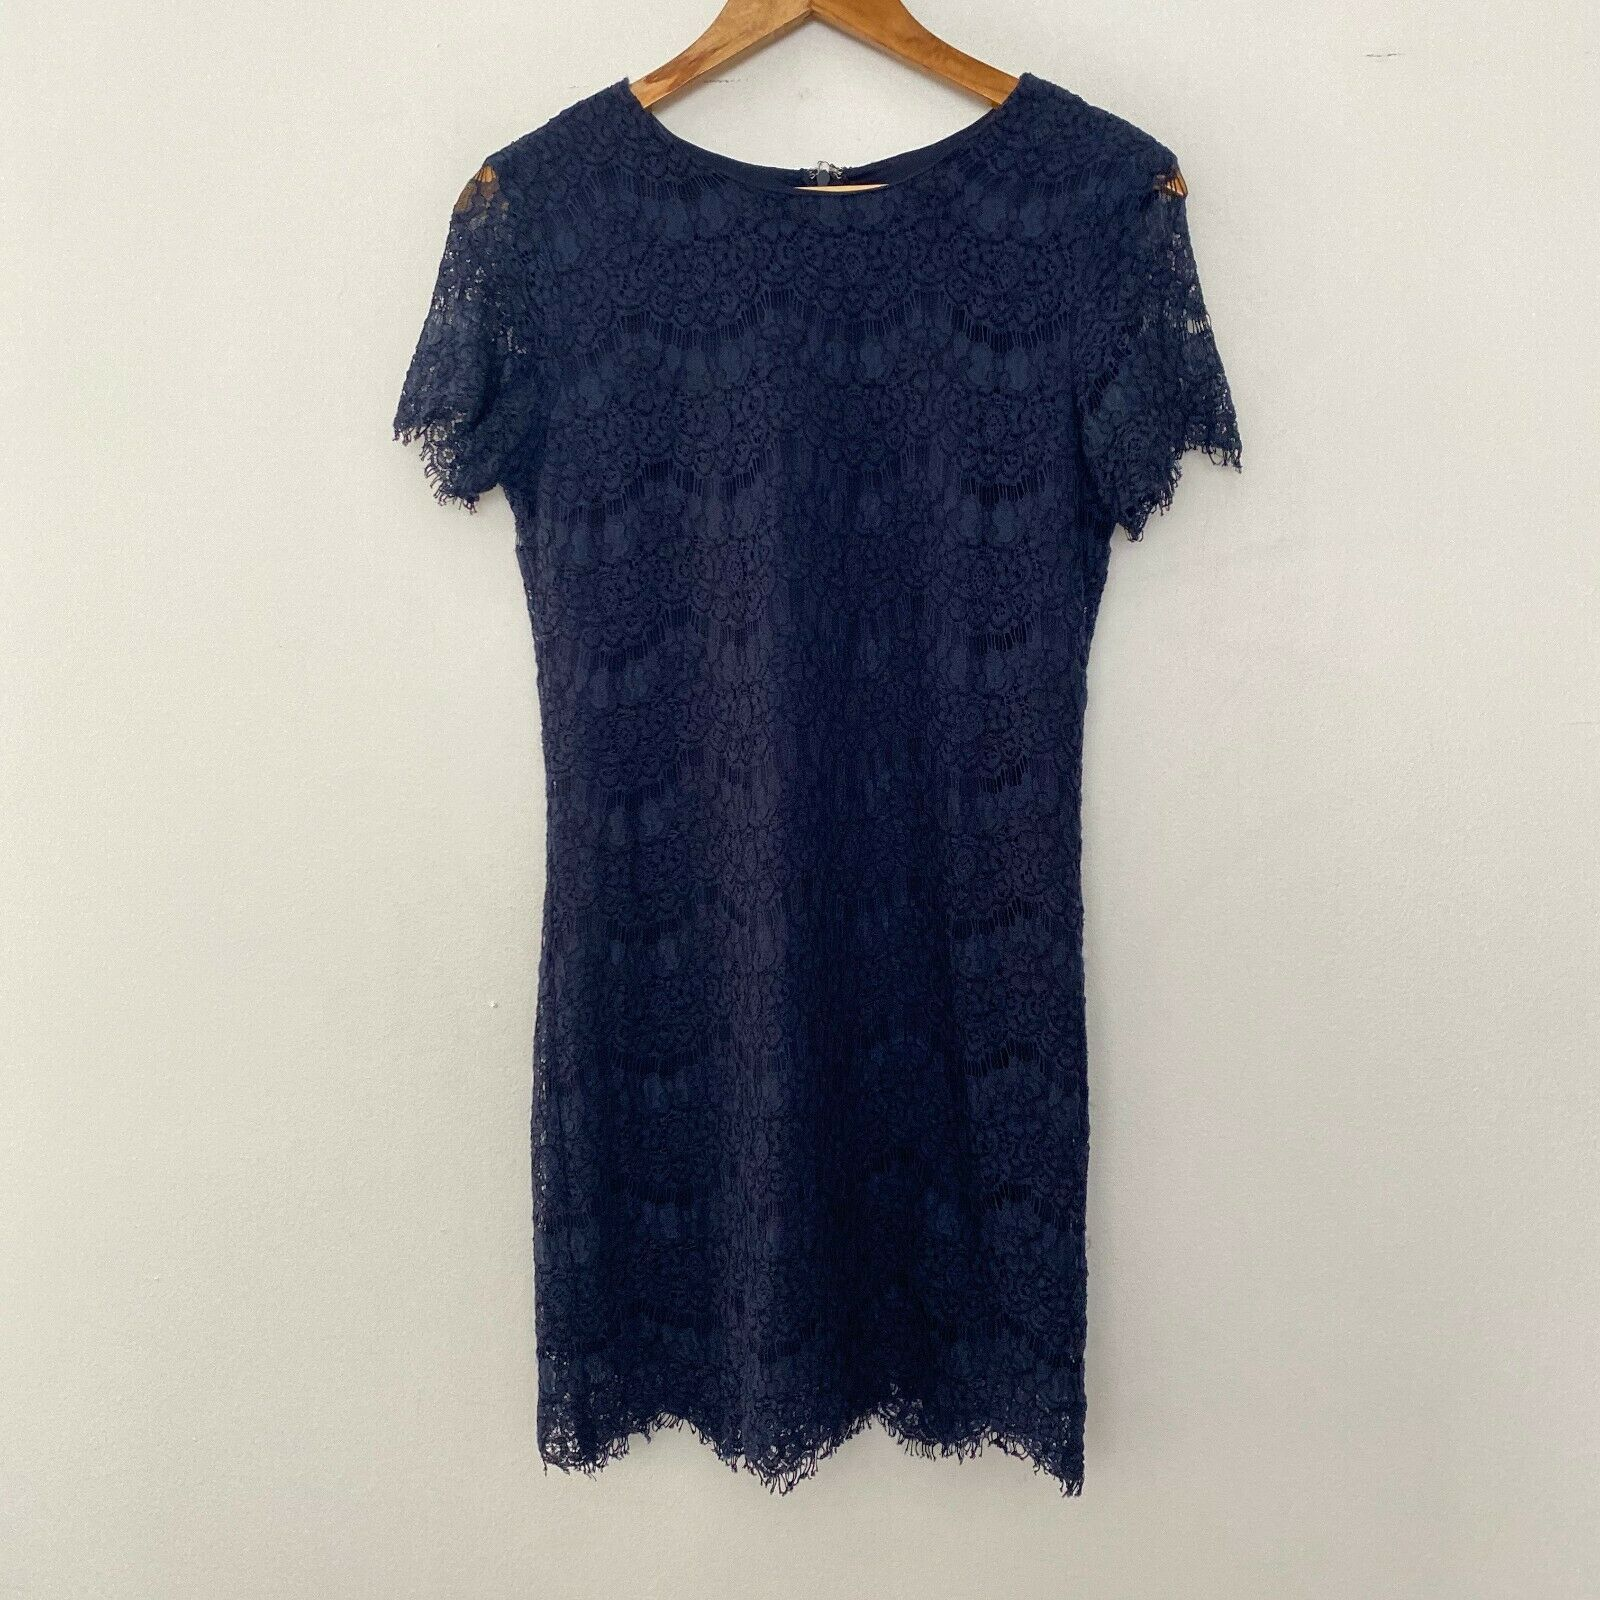 Primary image for Lulus S Small Take Me to Brunch Lace Short Sleeve Mini Shift Dress Blue